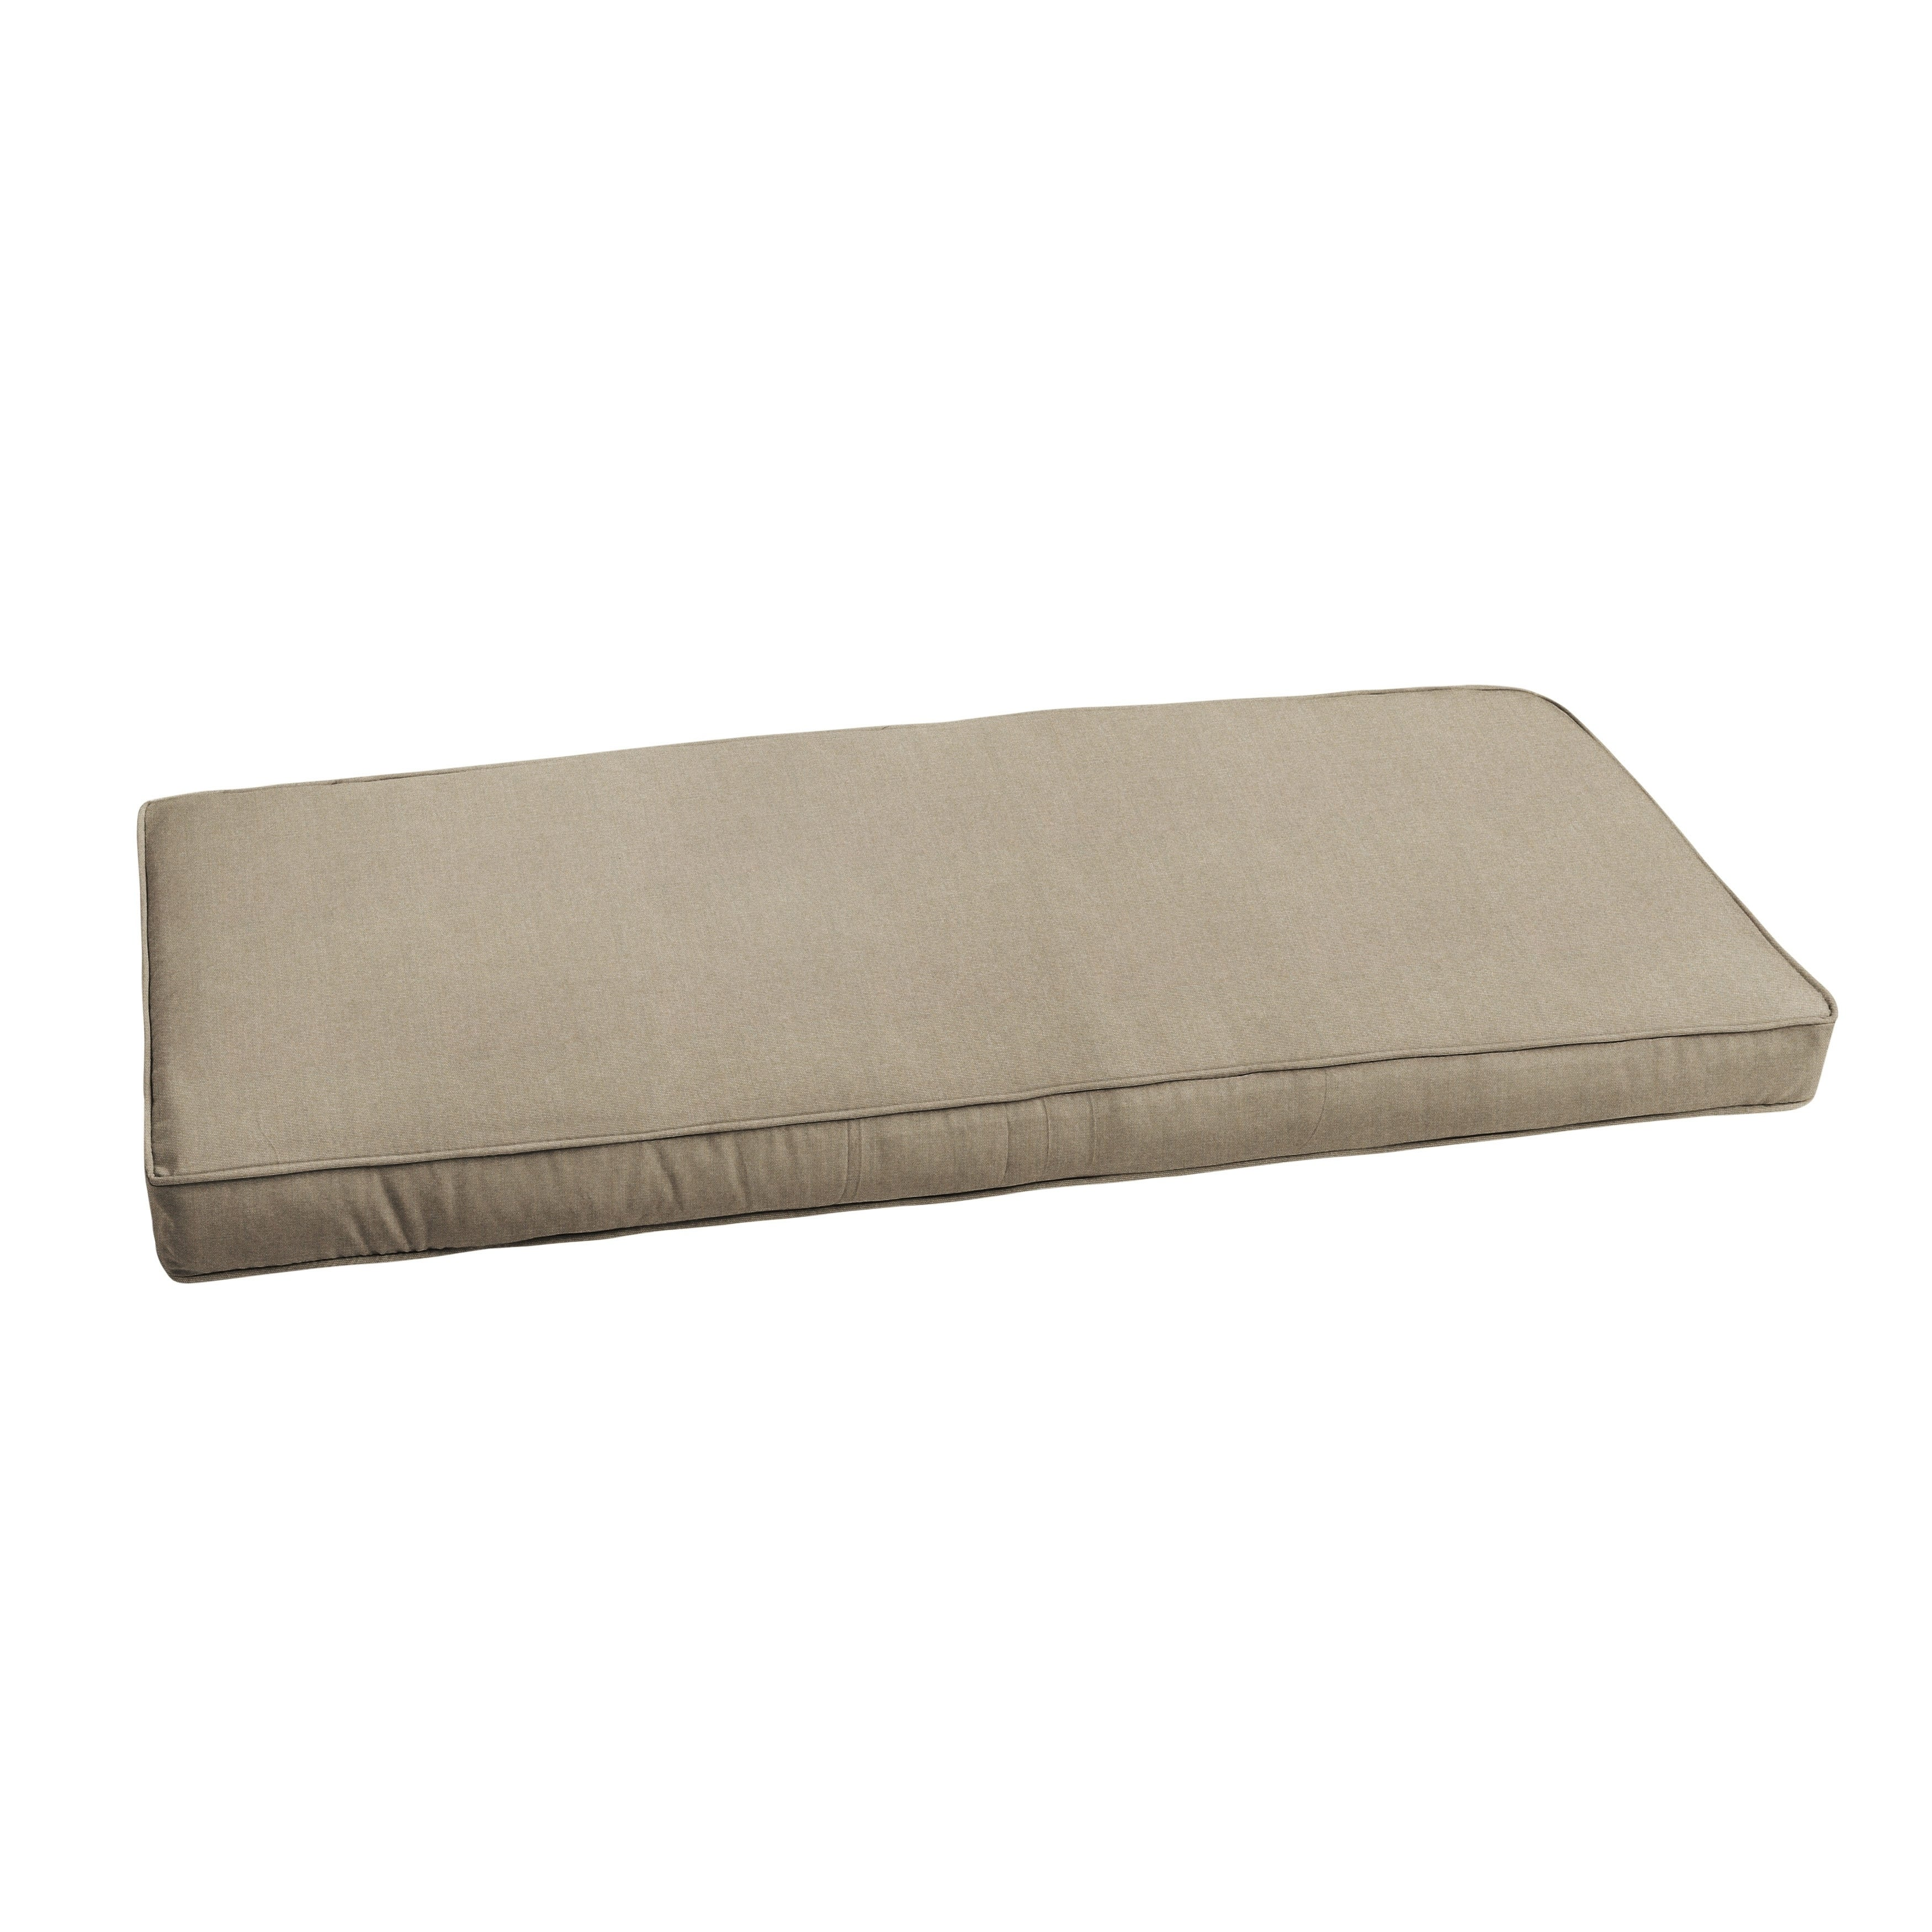 Sunbrella Canvas Taupe Indoor Outdoor Bench Cushion 37 To 48 Corded Overstock 22006497